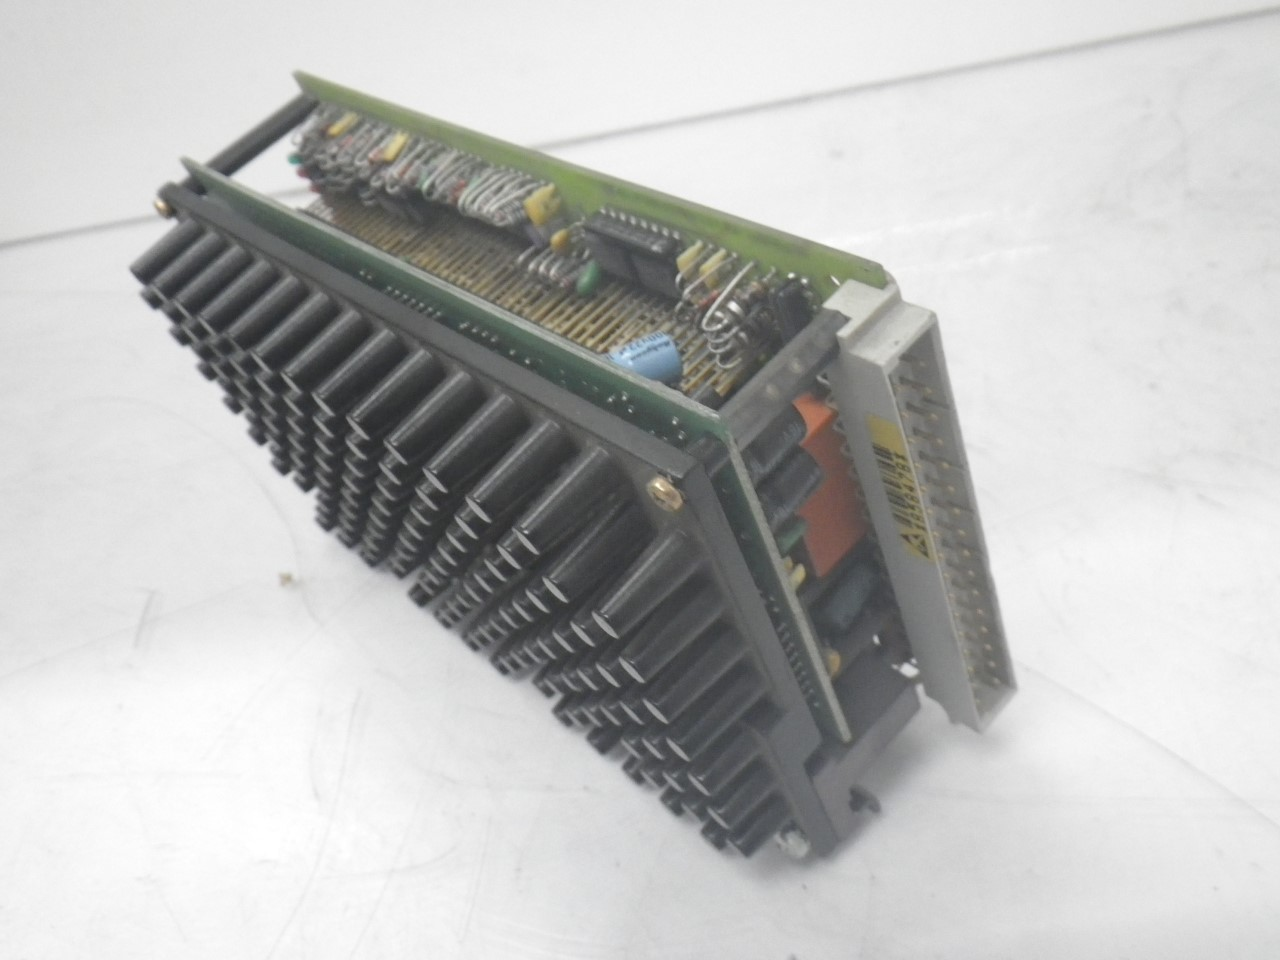 IMGP8387D 550 RS 19 Berger Lahr Stepper Drive + Siemens B1500-D325 Board(Used Tested) (19)